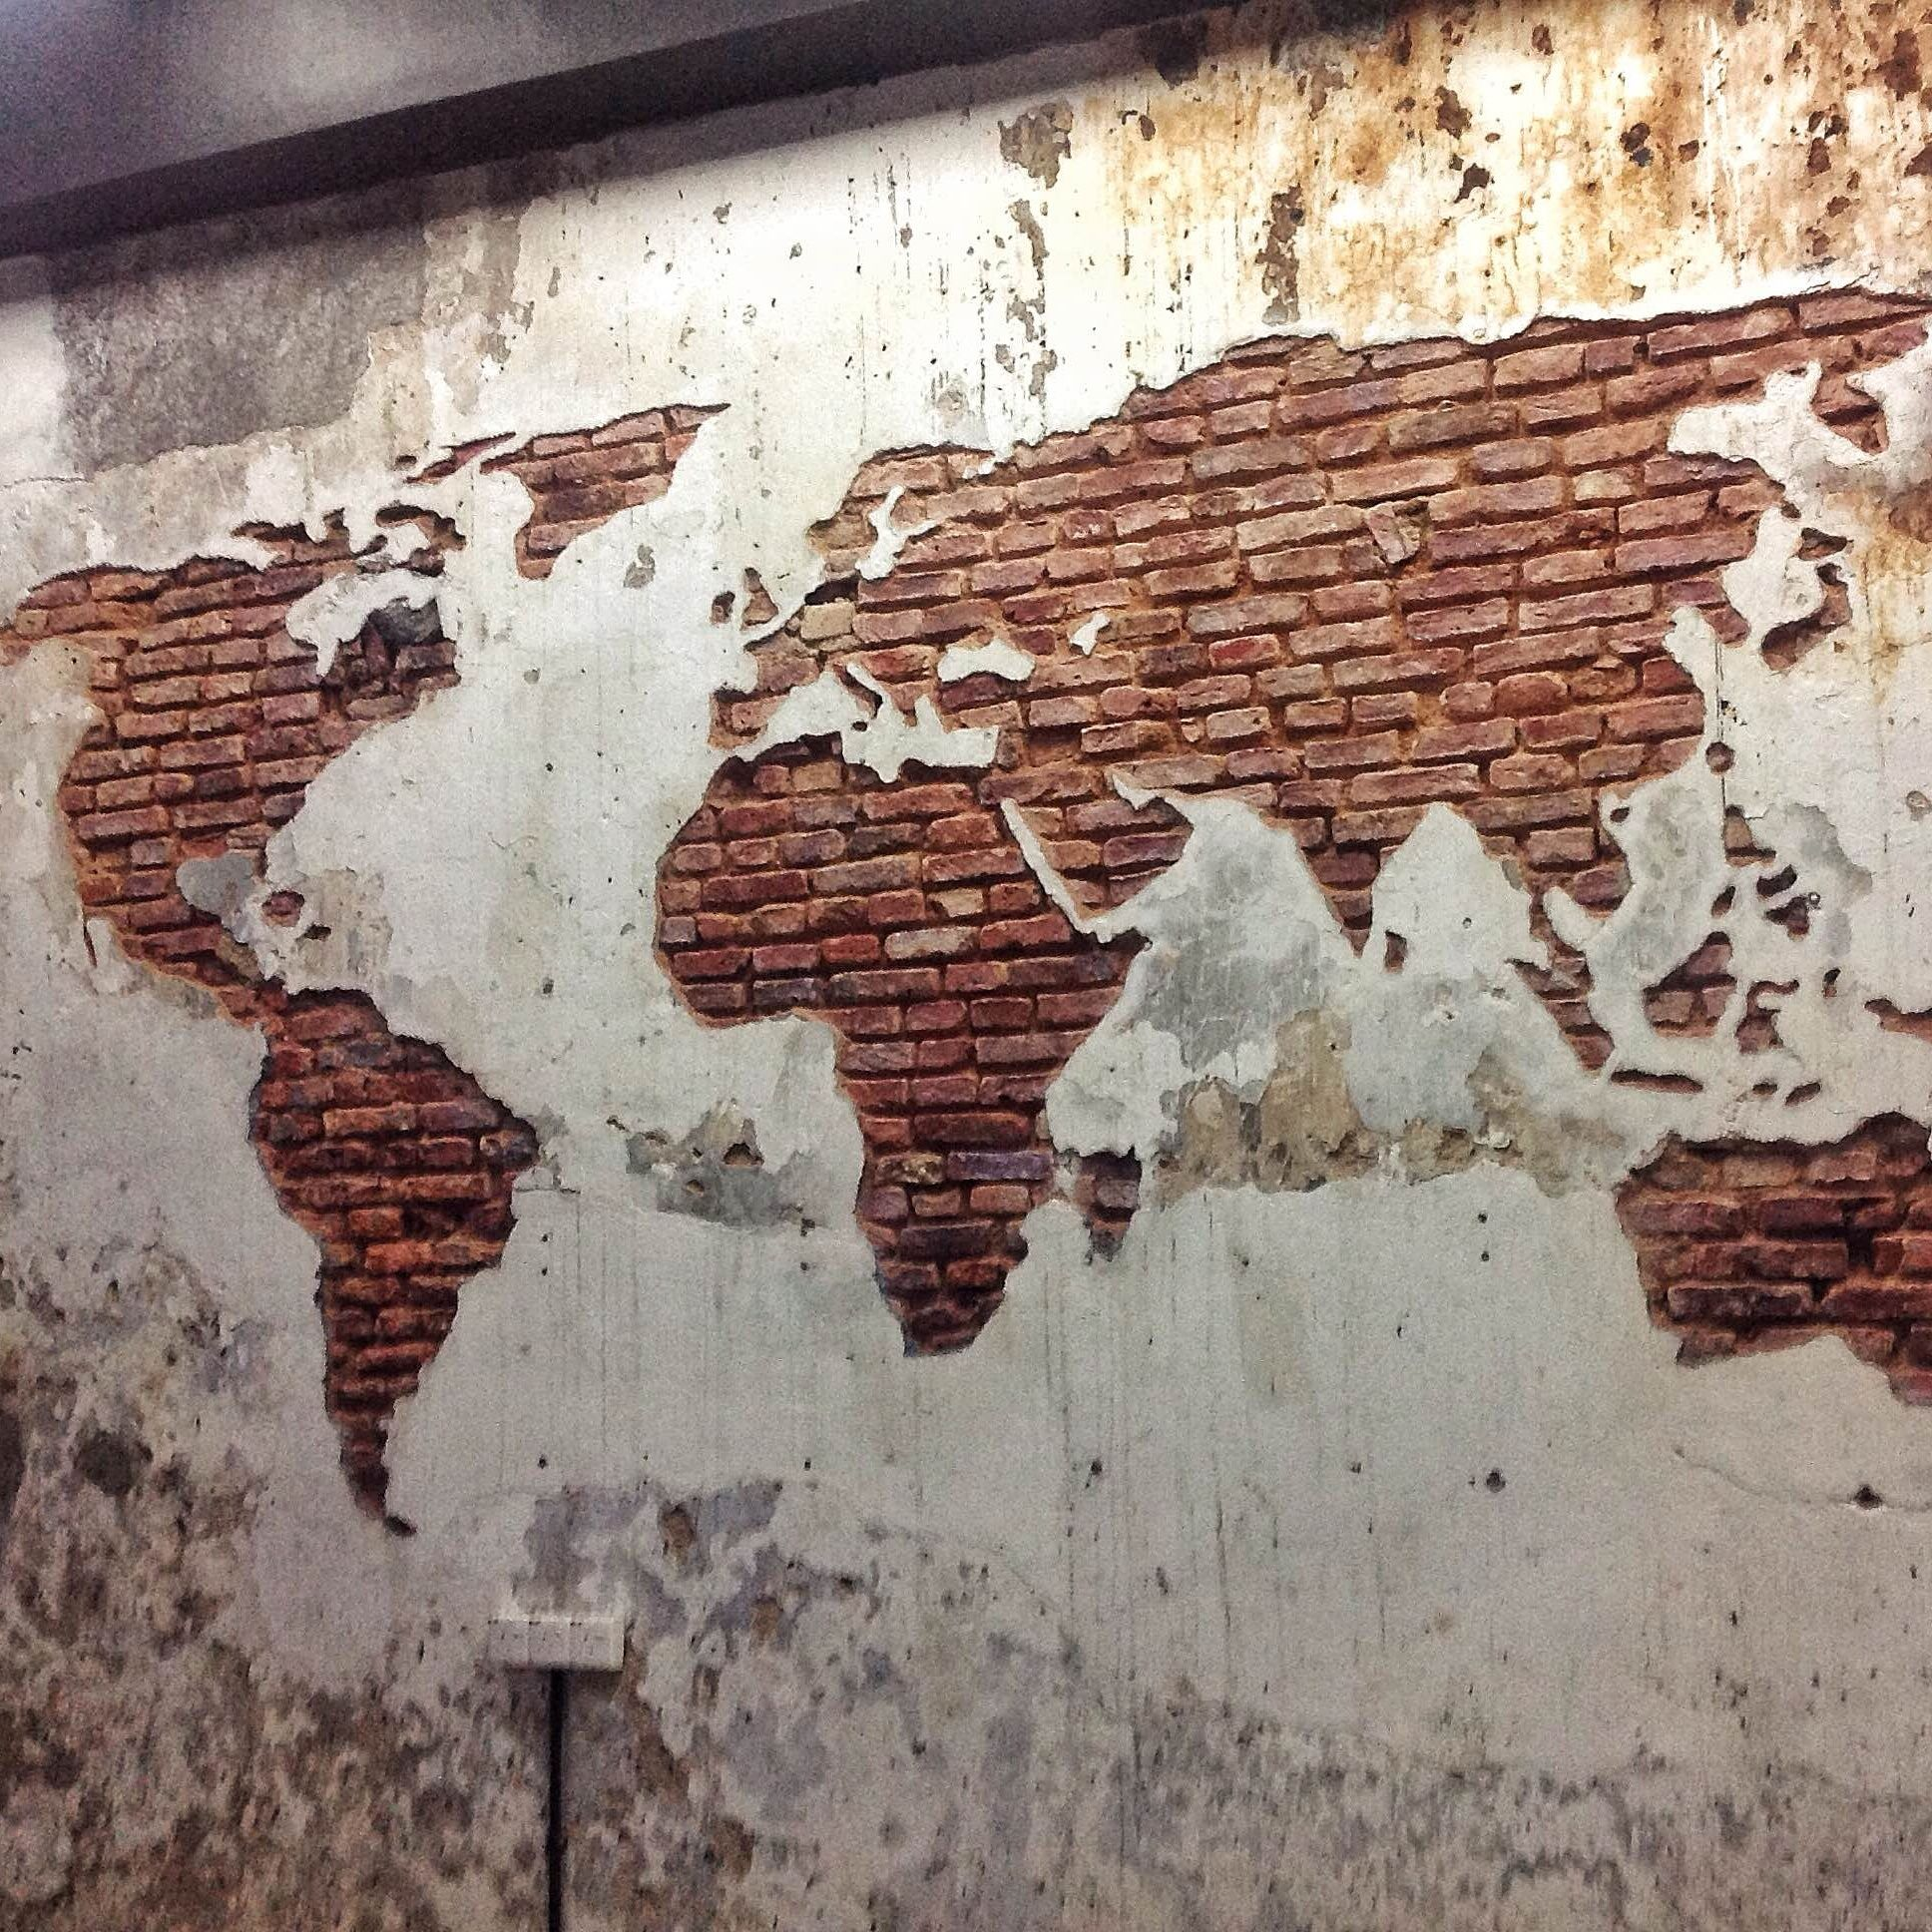 Brick exposure in the shape of the world map